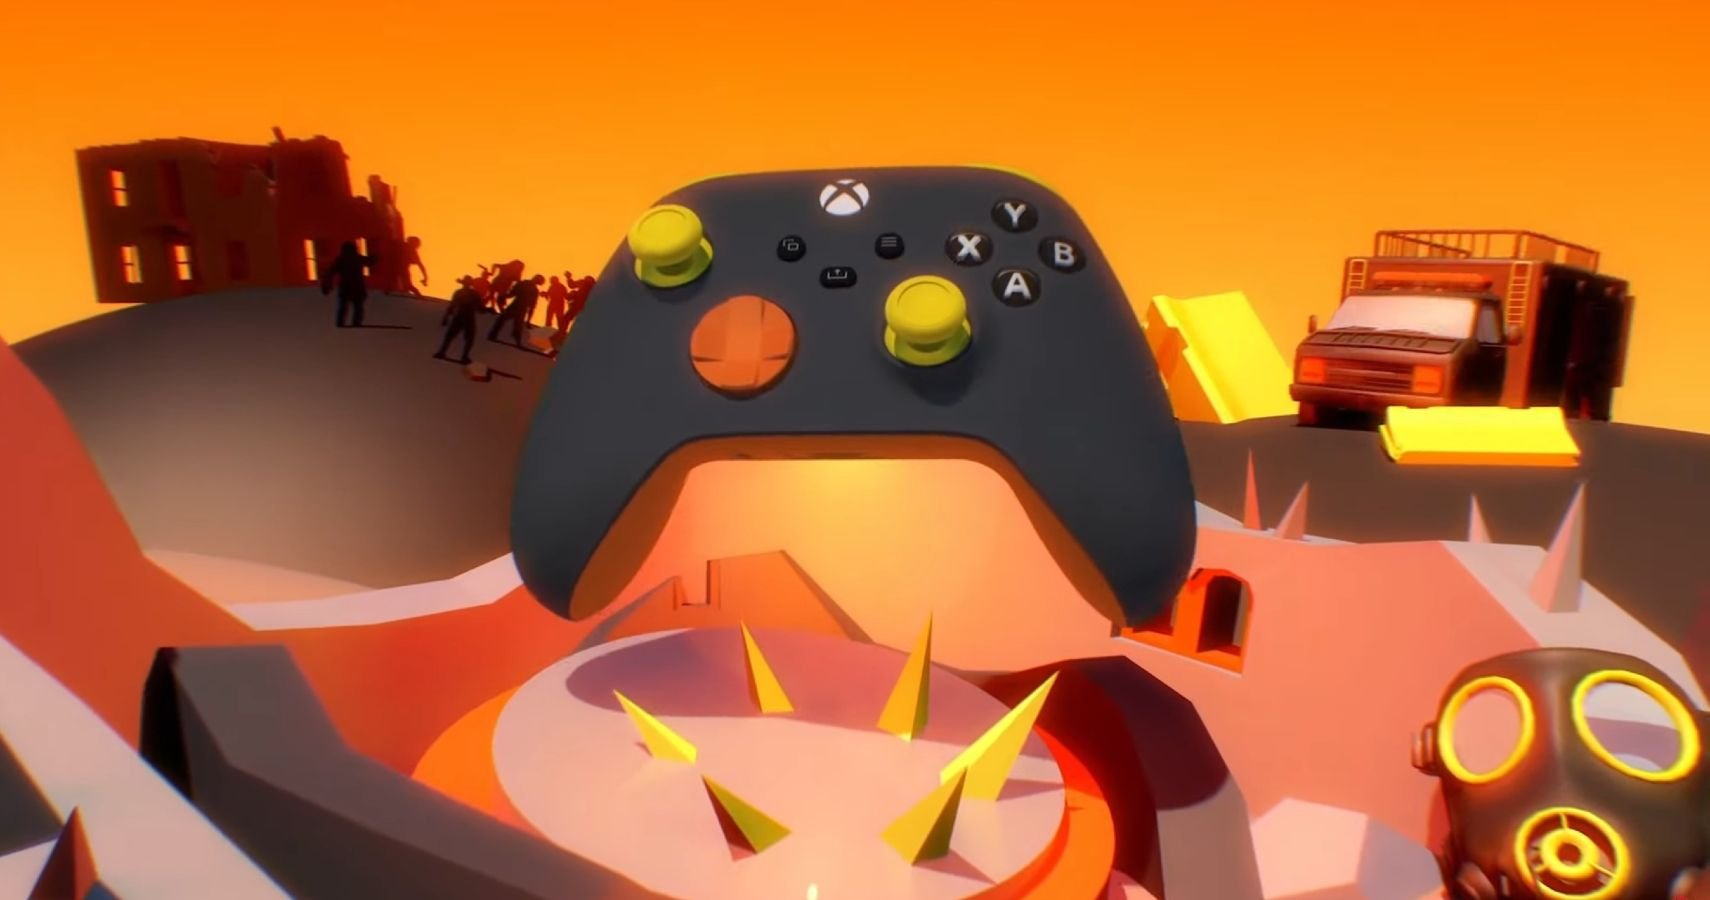 Customizable Xbox Series X|S Controllers Are Now Available From Xbox Design Labs